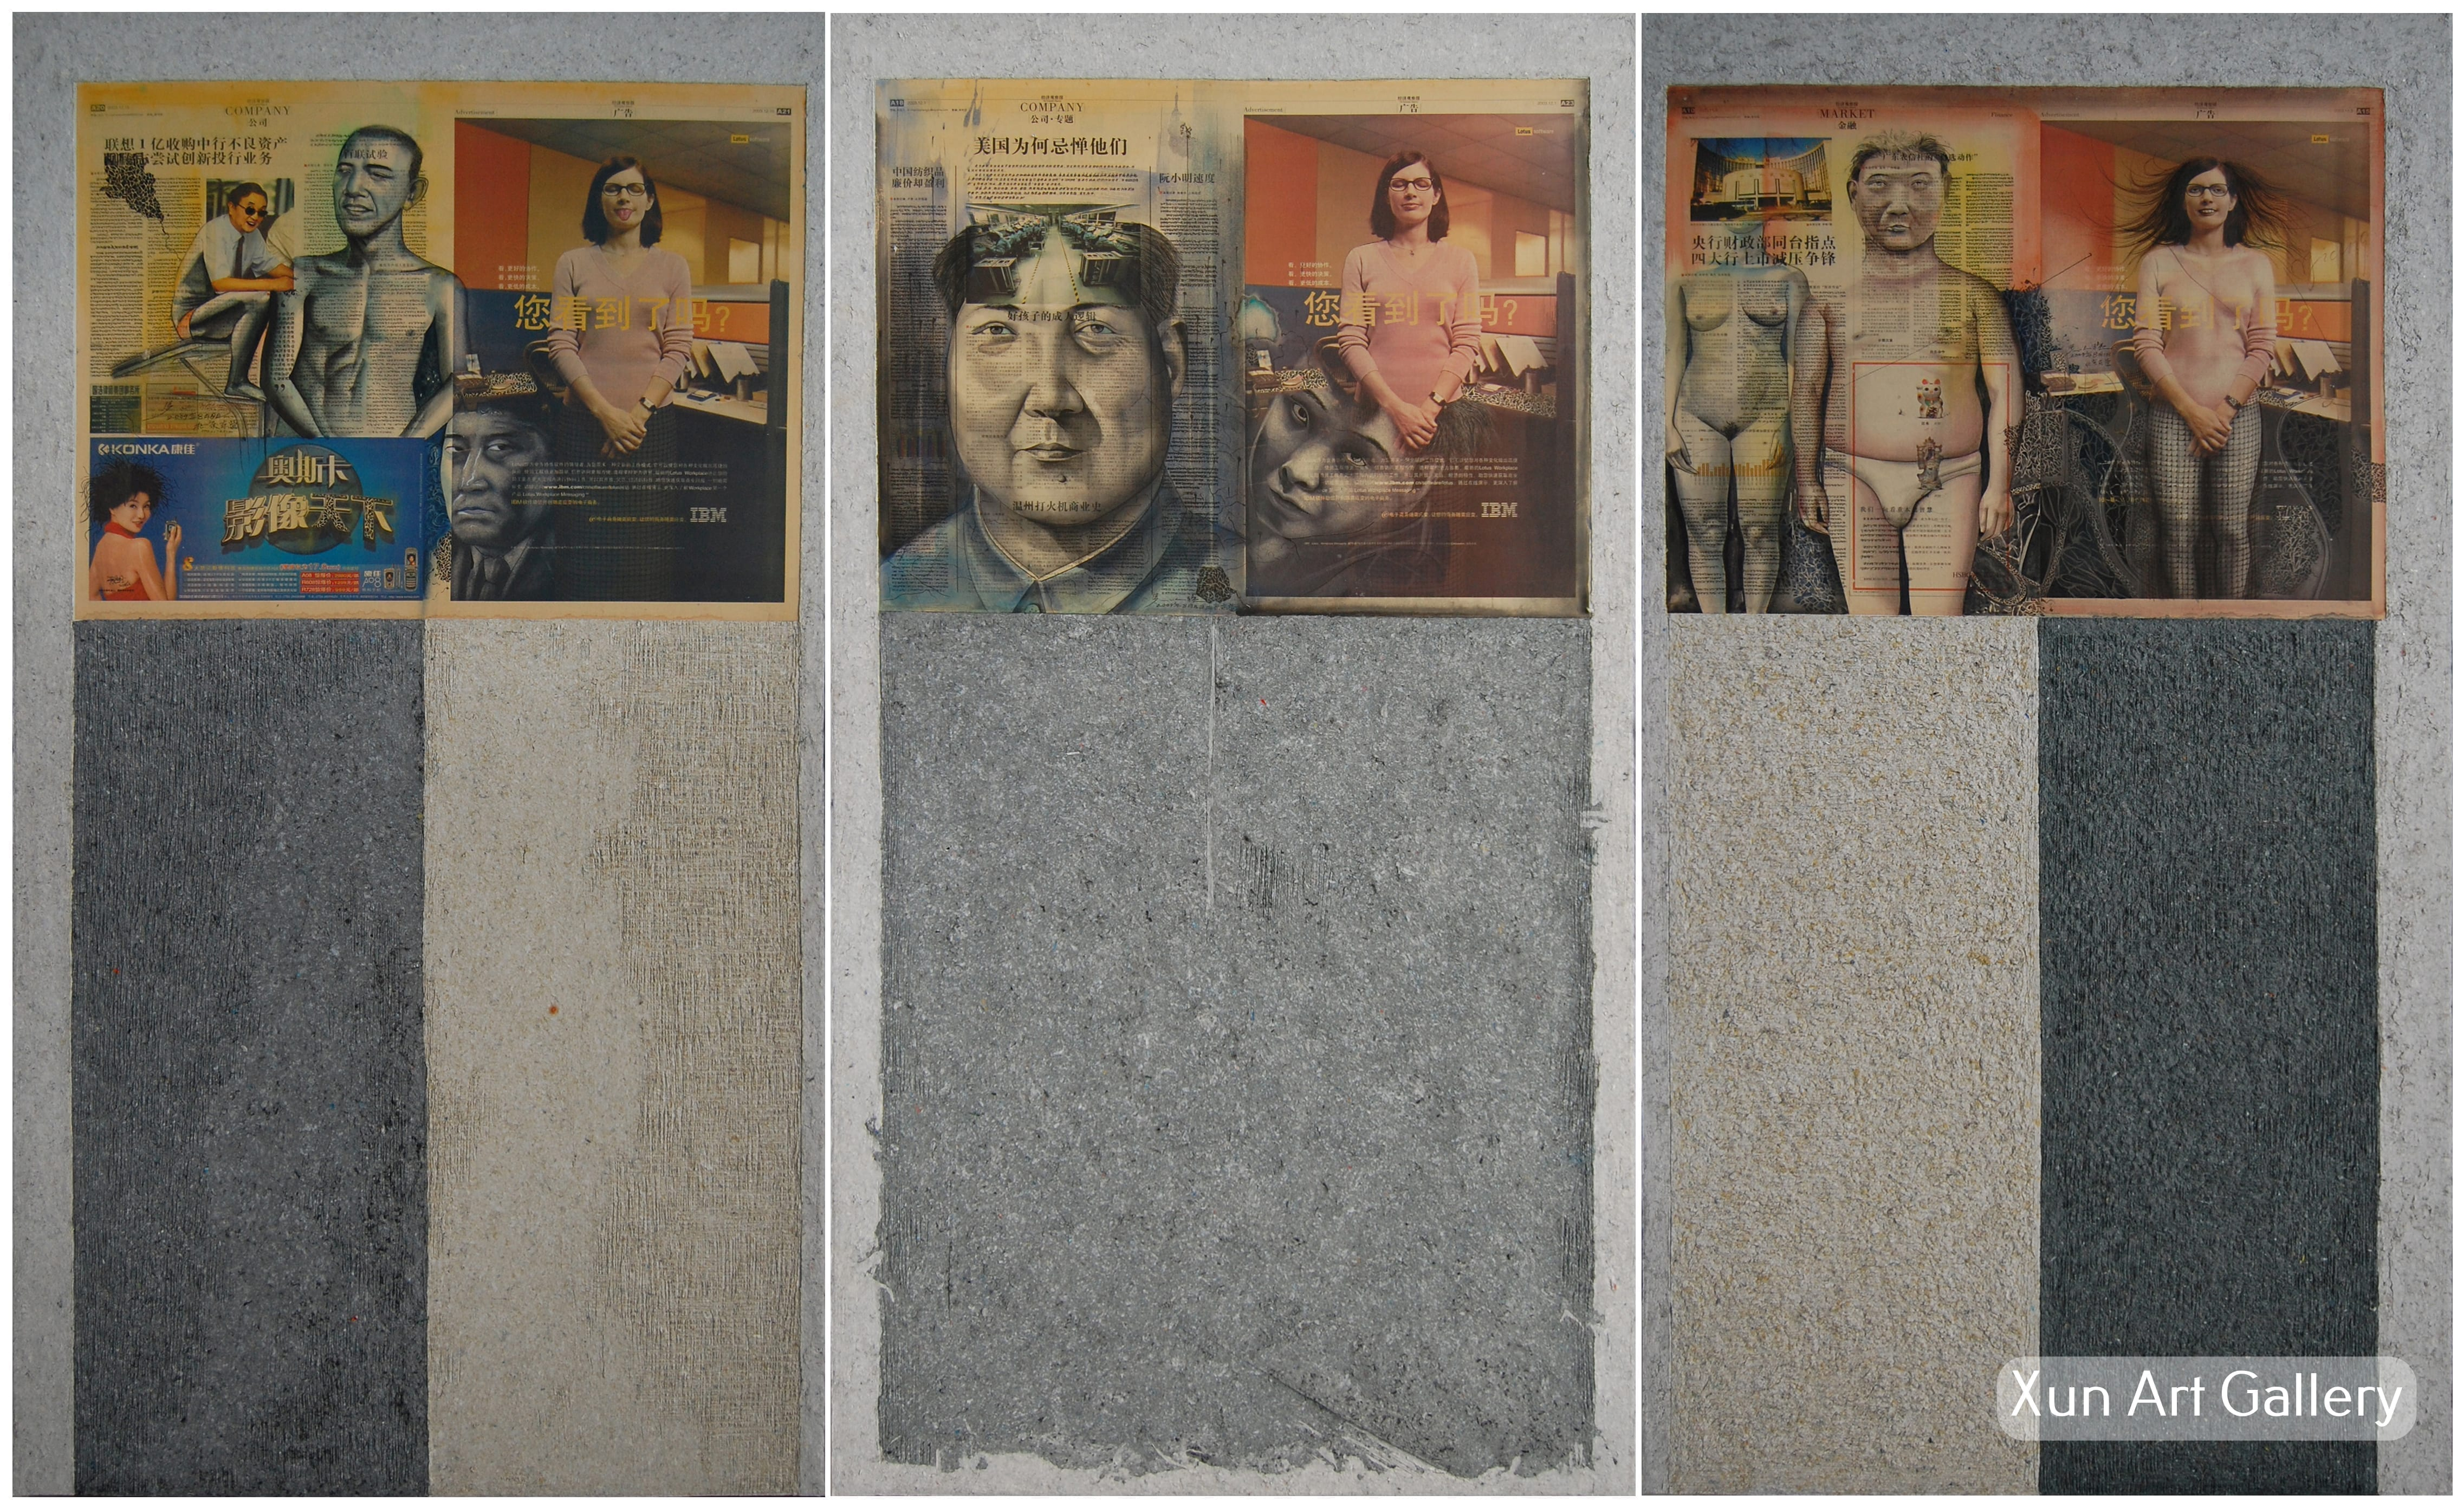 Have you seen it (newspaper synthesis) by WU Yiqang